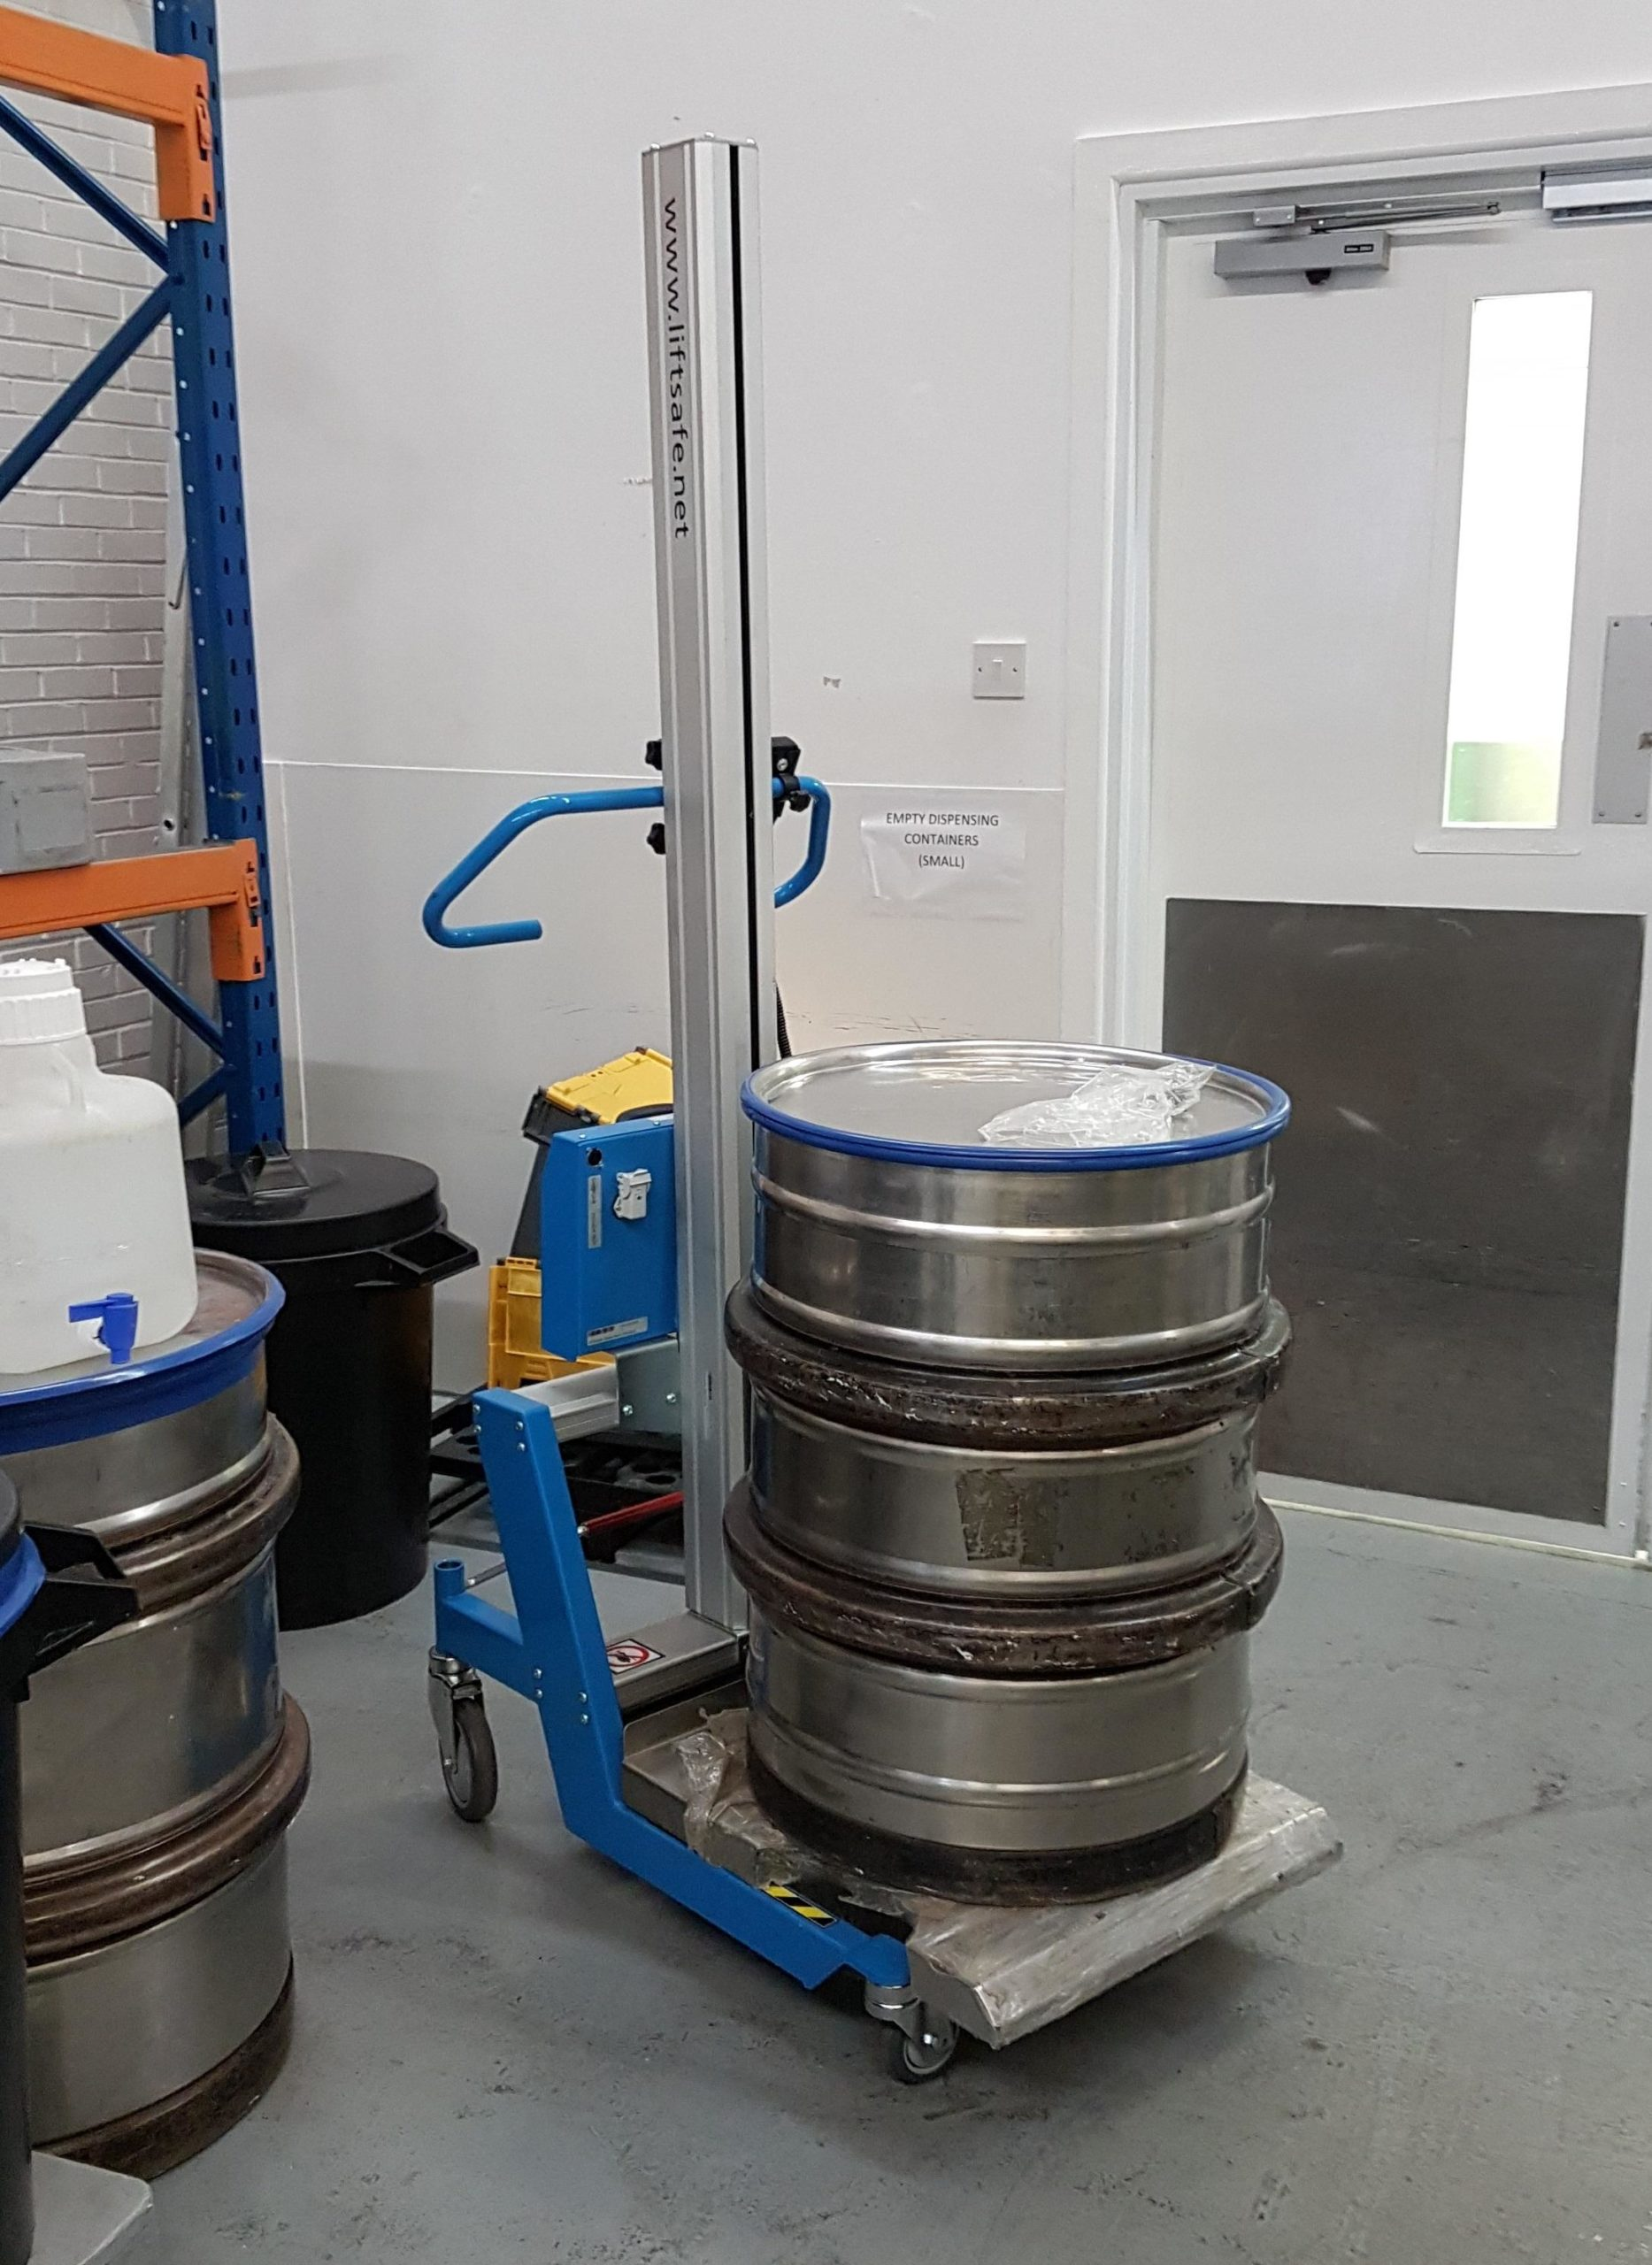 World Renowned Pharmaceutical Manufacturer Has Demonstration Of Lift Safe Electric Lifter